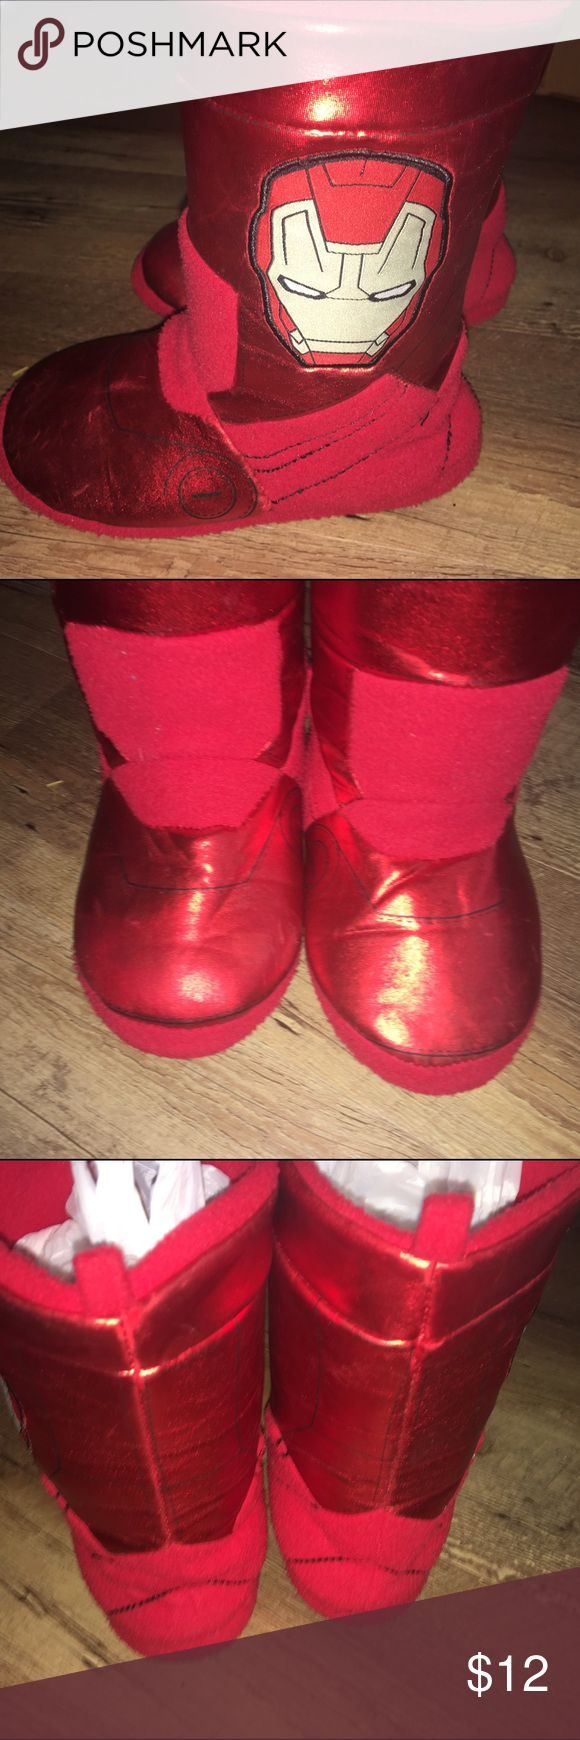 Iron man House Shoes Iron man House Shoes  Size 1-3. Hardly worn. My son has outgrown his love for Iron man. It used to drive me crazy because everything he wanted had iron man until he got to big. Now I'm just sad.  Price firm unless bundled with other listings from my store. Ship same day. No trades.   #houseshoes #boyshouseshoes #ironman #disney #nighttime #boys Disney Shoes